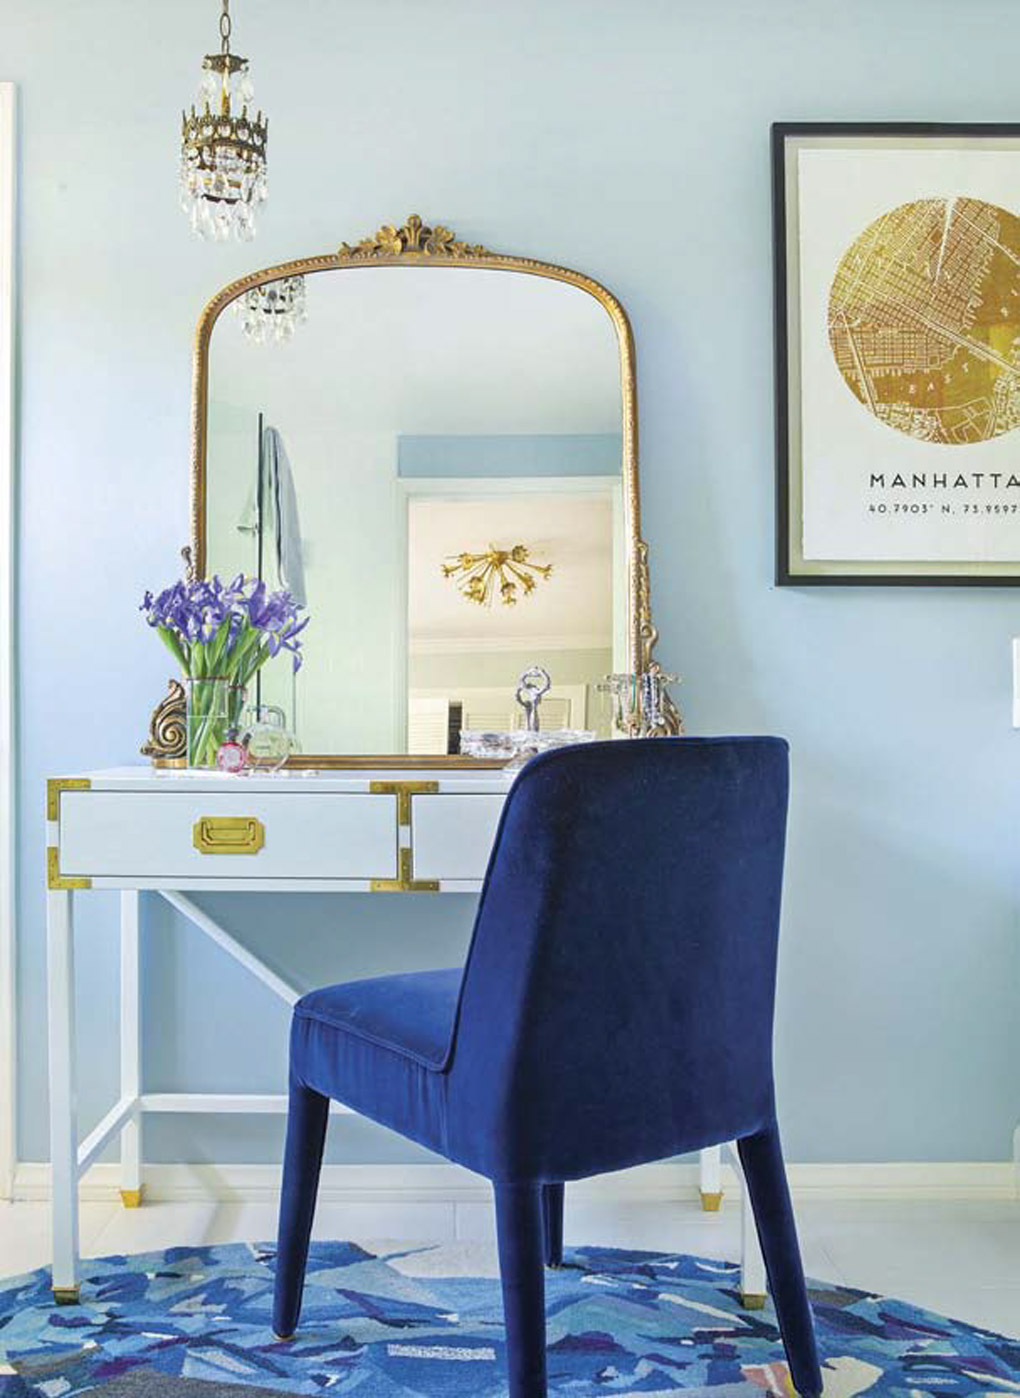 Bathroom vanity area with a gold accented mirror, hanging chandelier and a bright blue velvet chair.